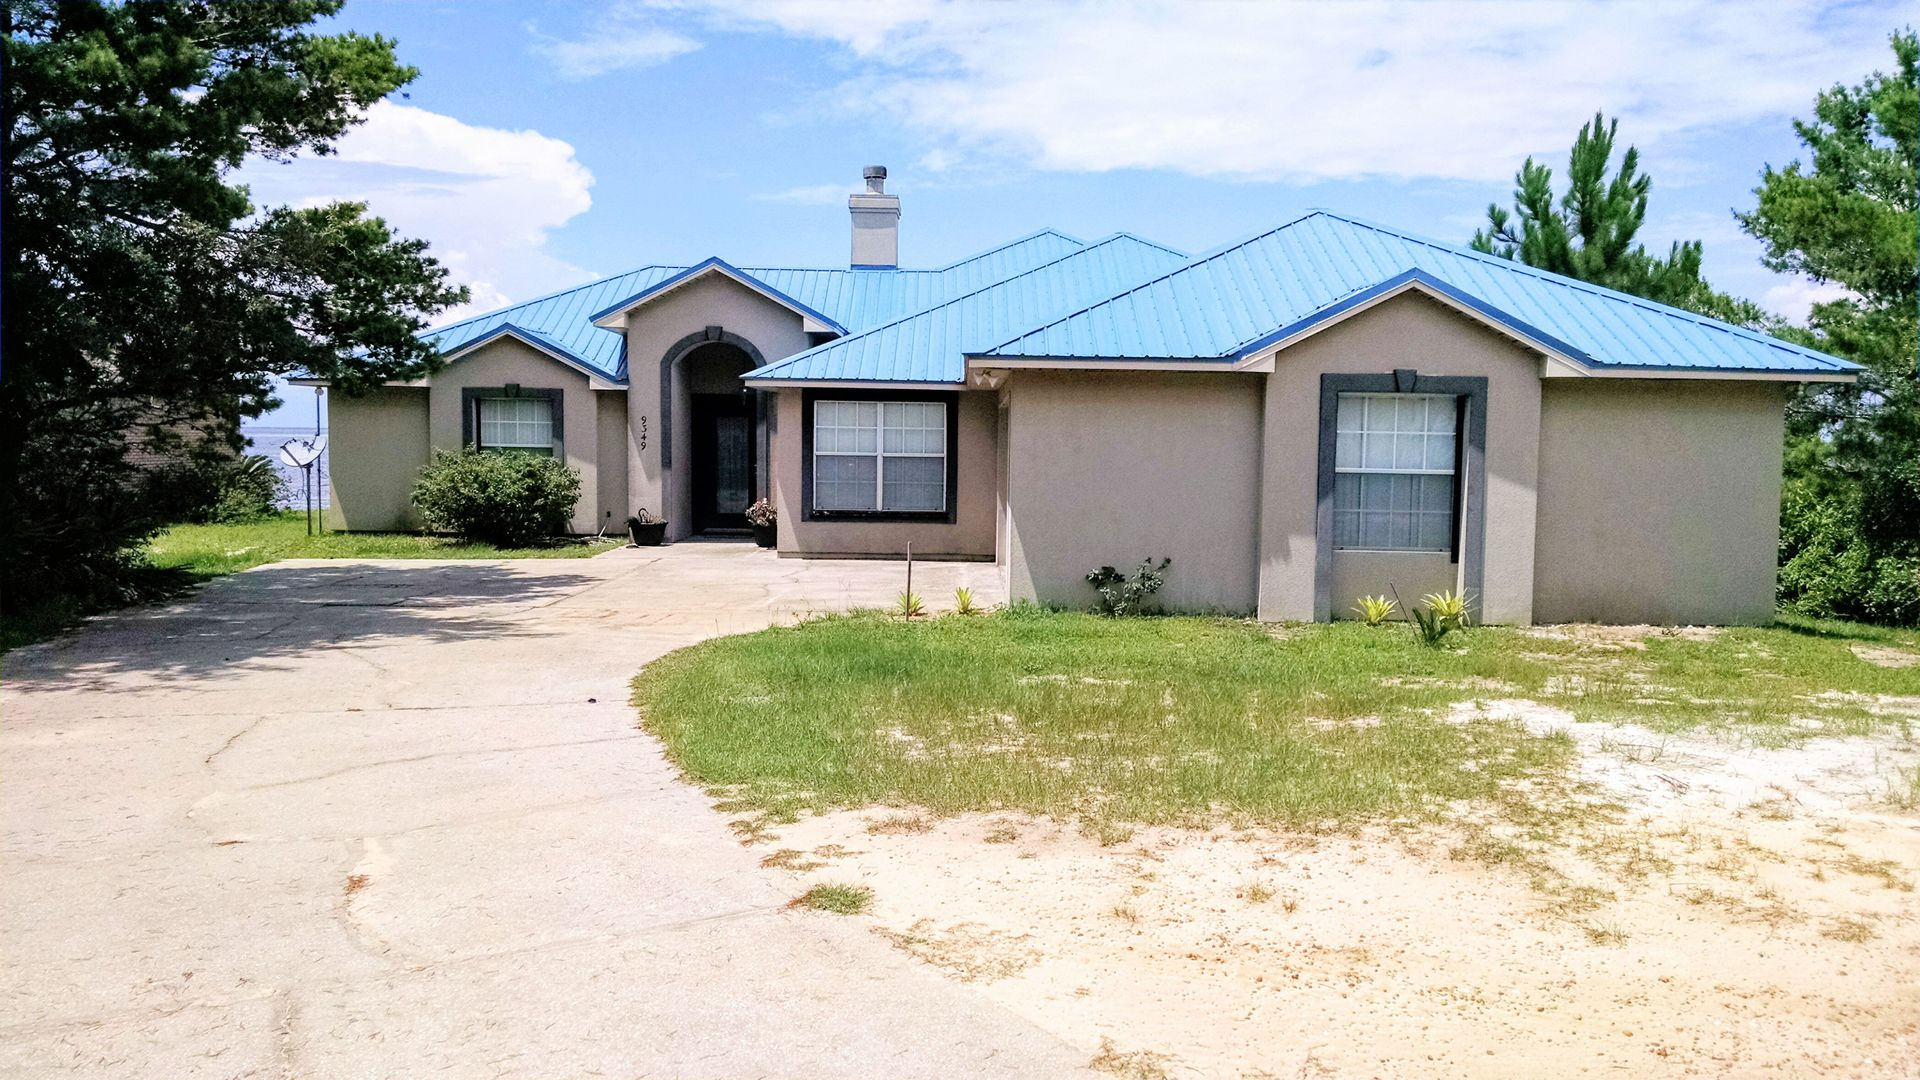 Entrance of this Vacation Home in Fort Morgan AL from road with plenty of parking for your stay.